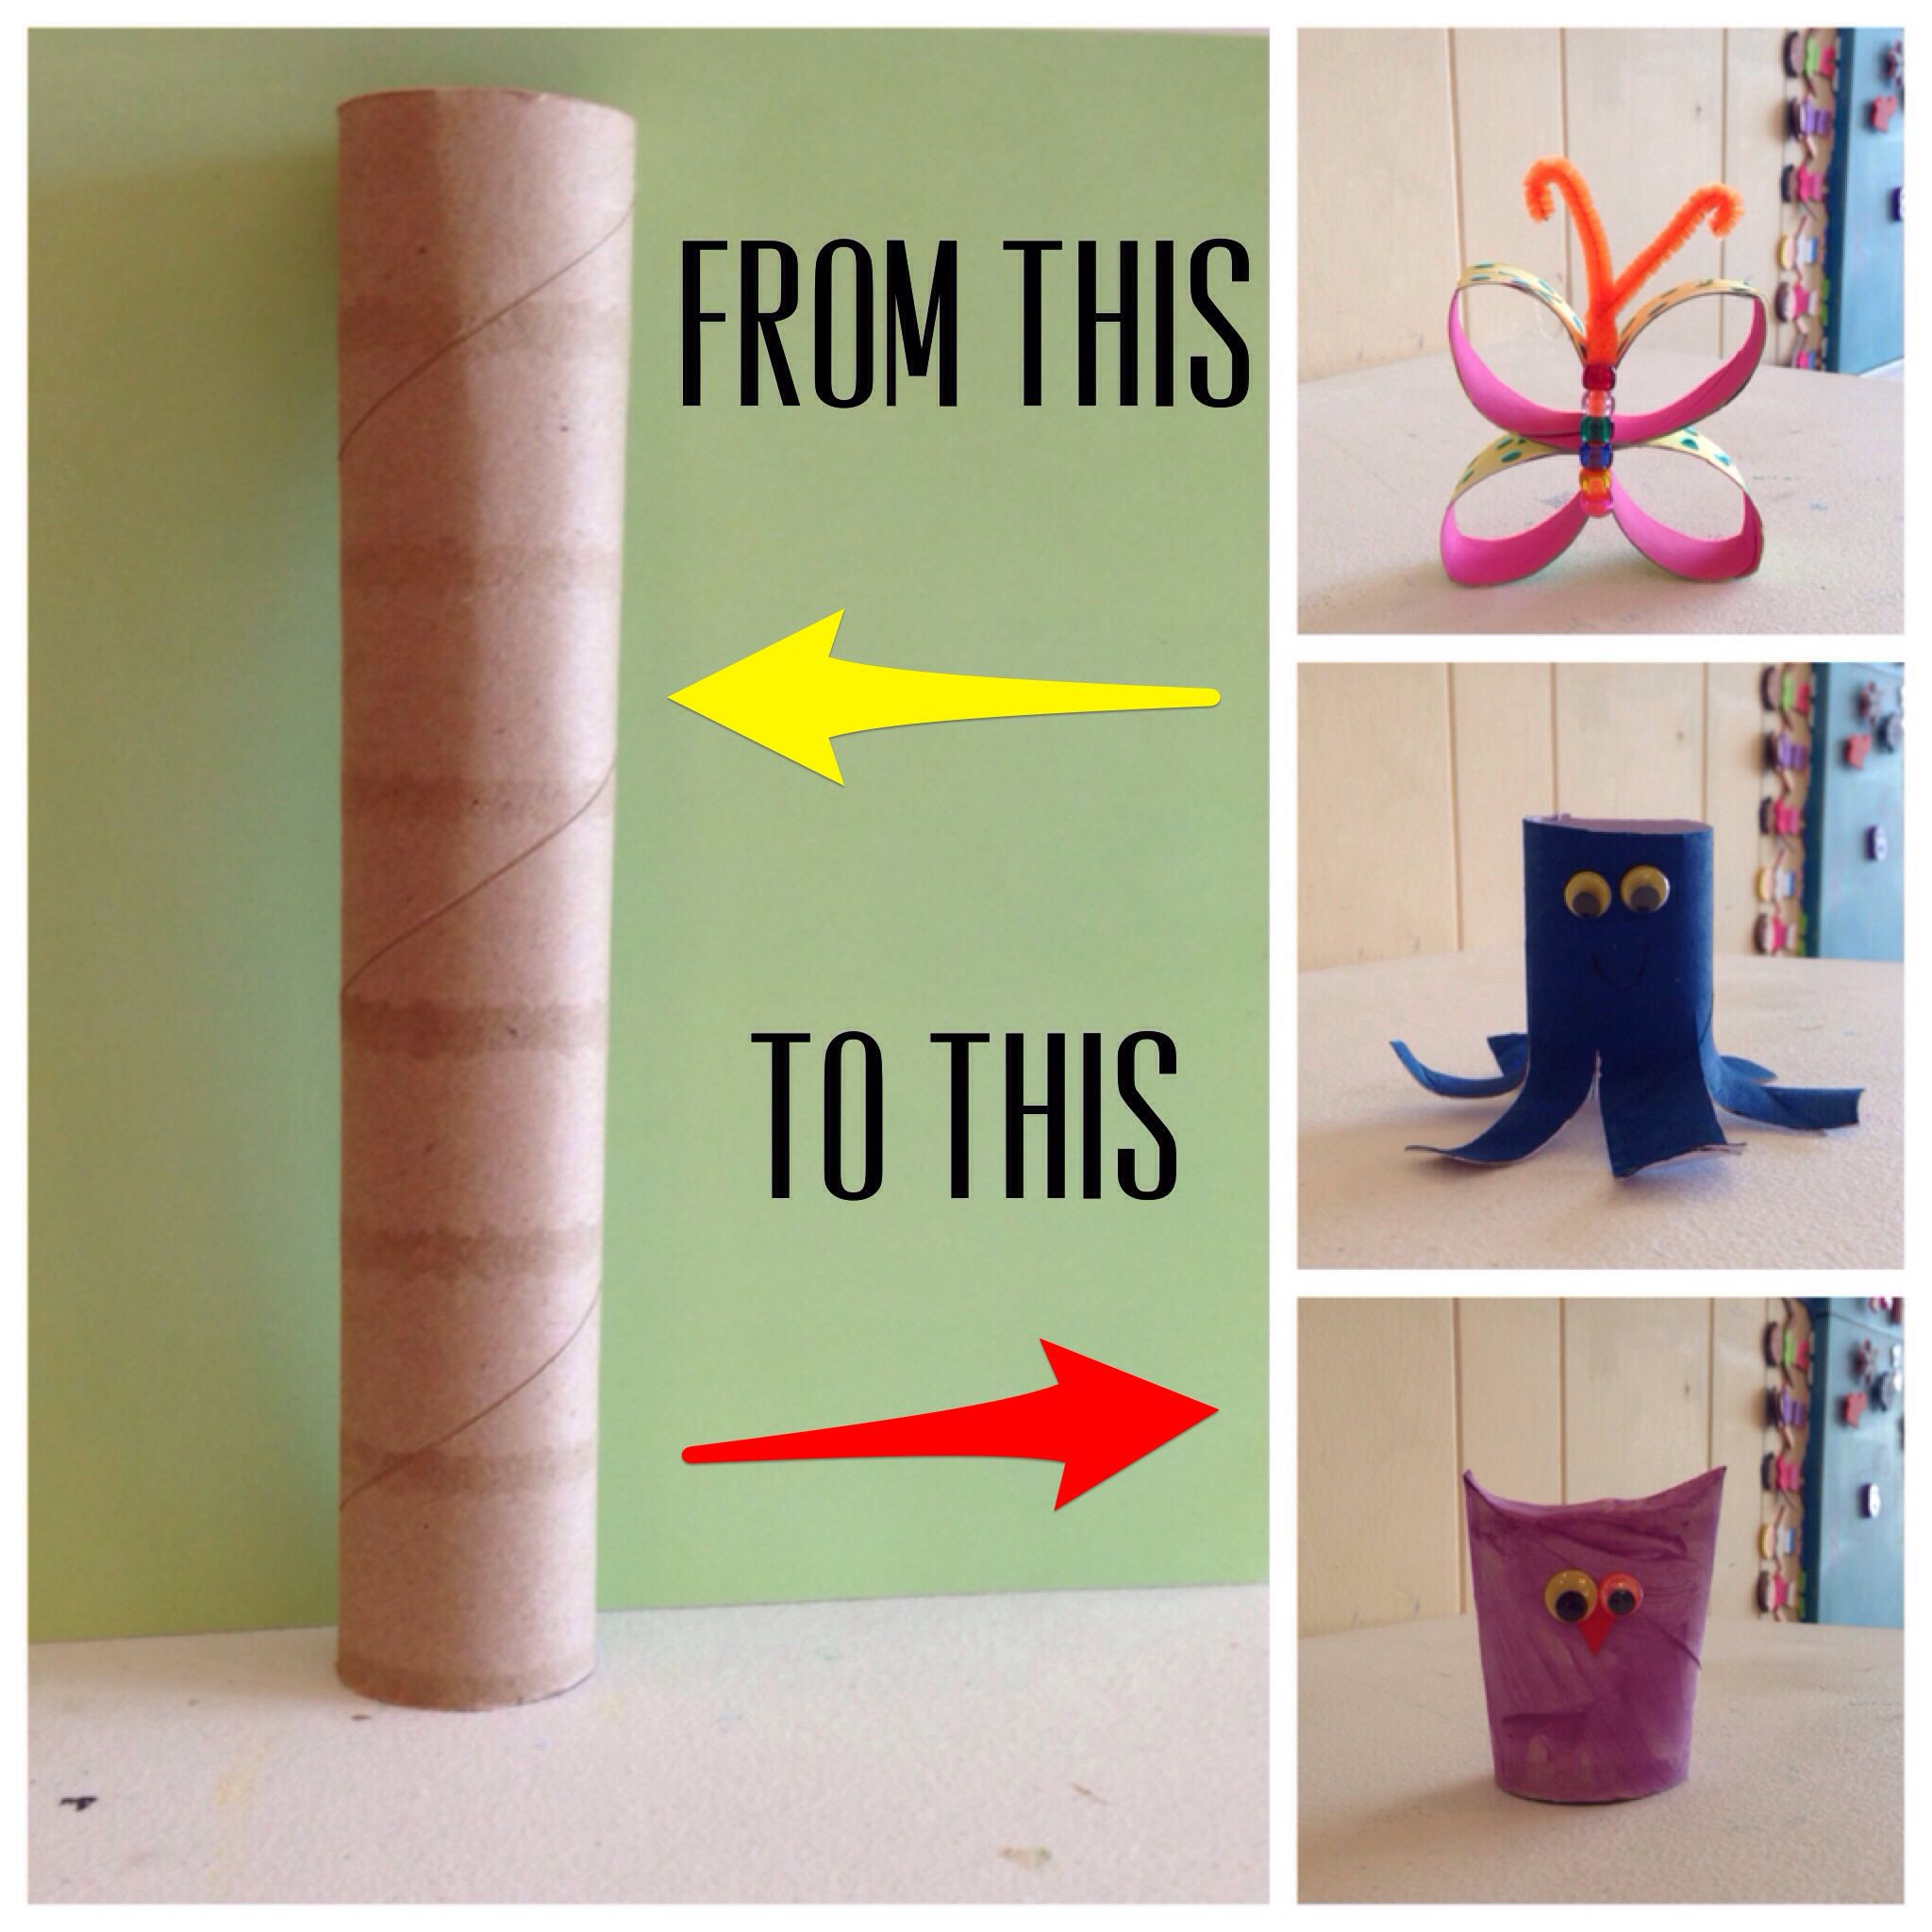 Paper Towel Rolls Crafts: Paper Towel Roll Crafts For Kids And Adults!!! Turn The